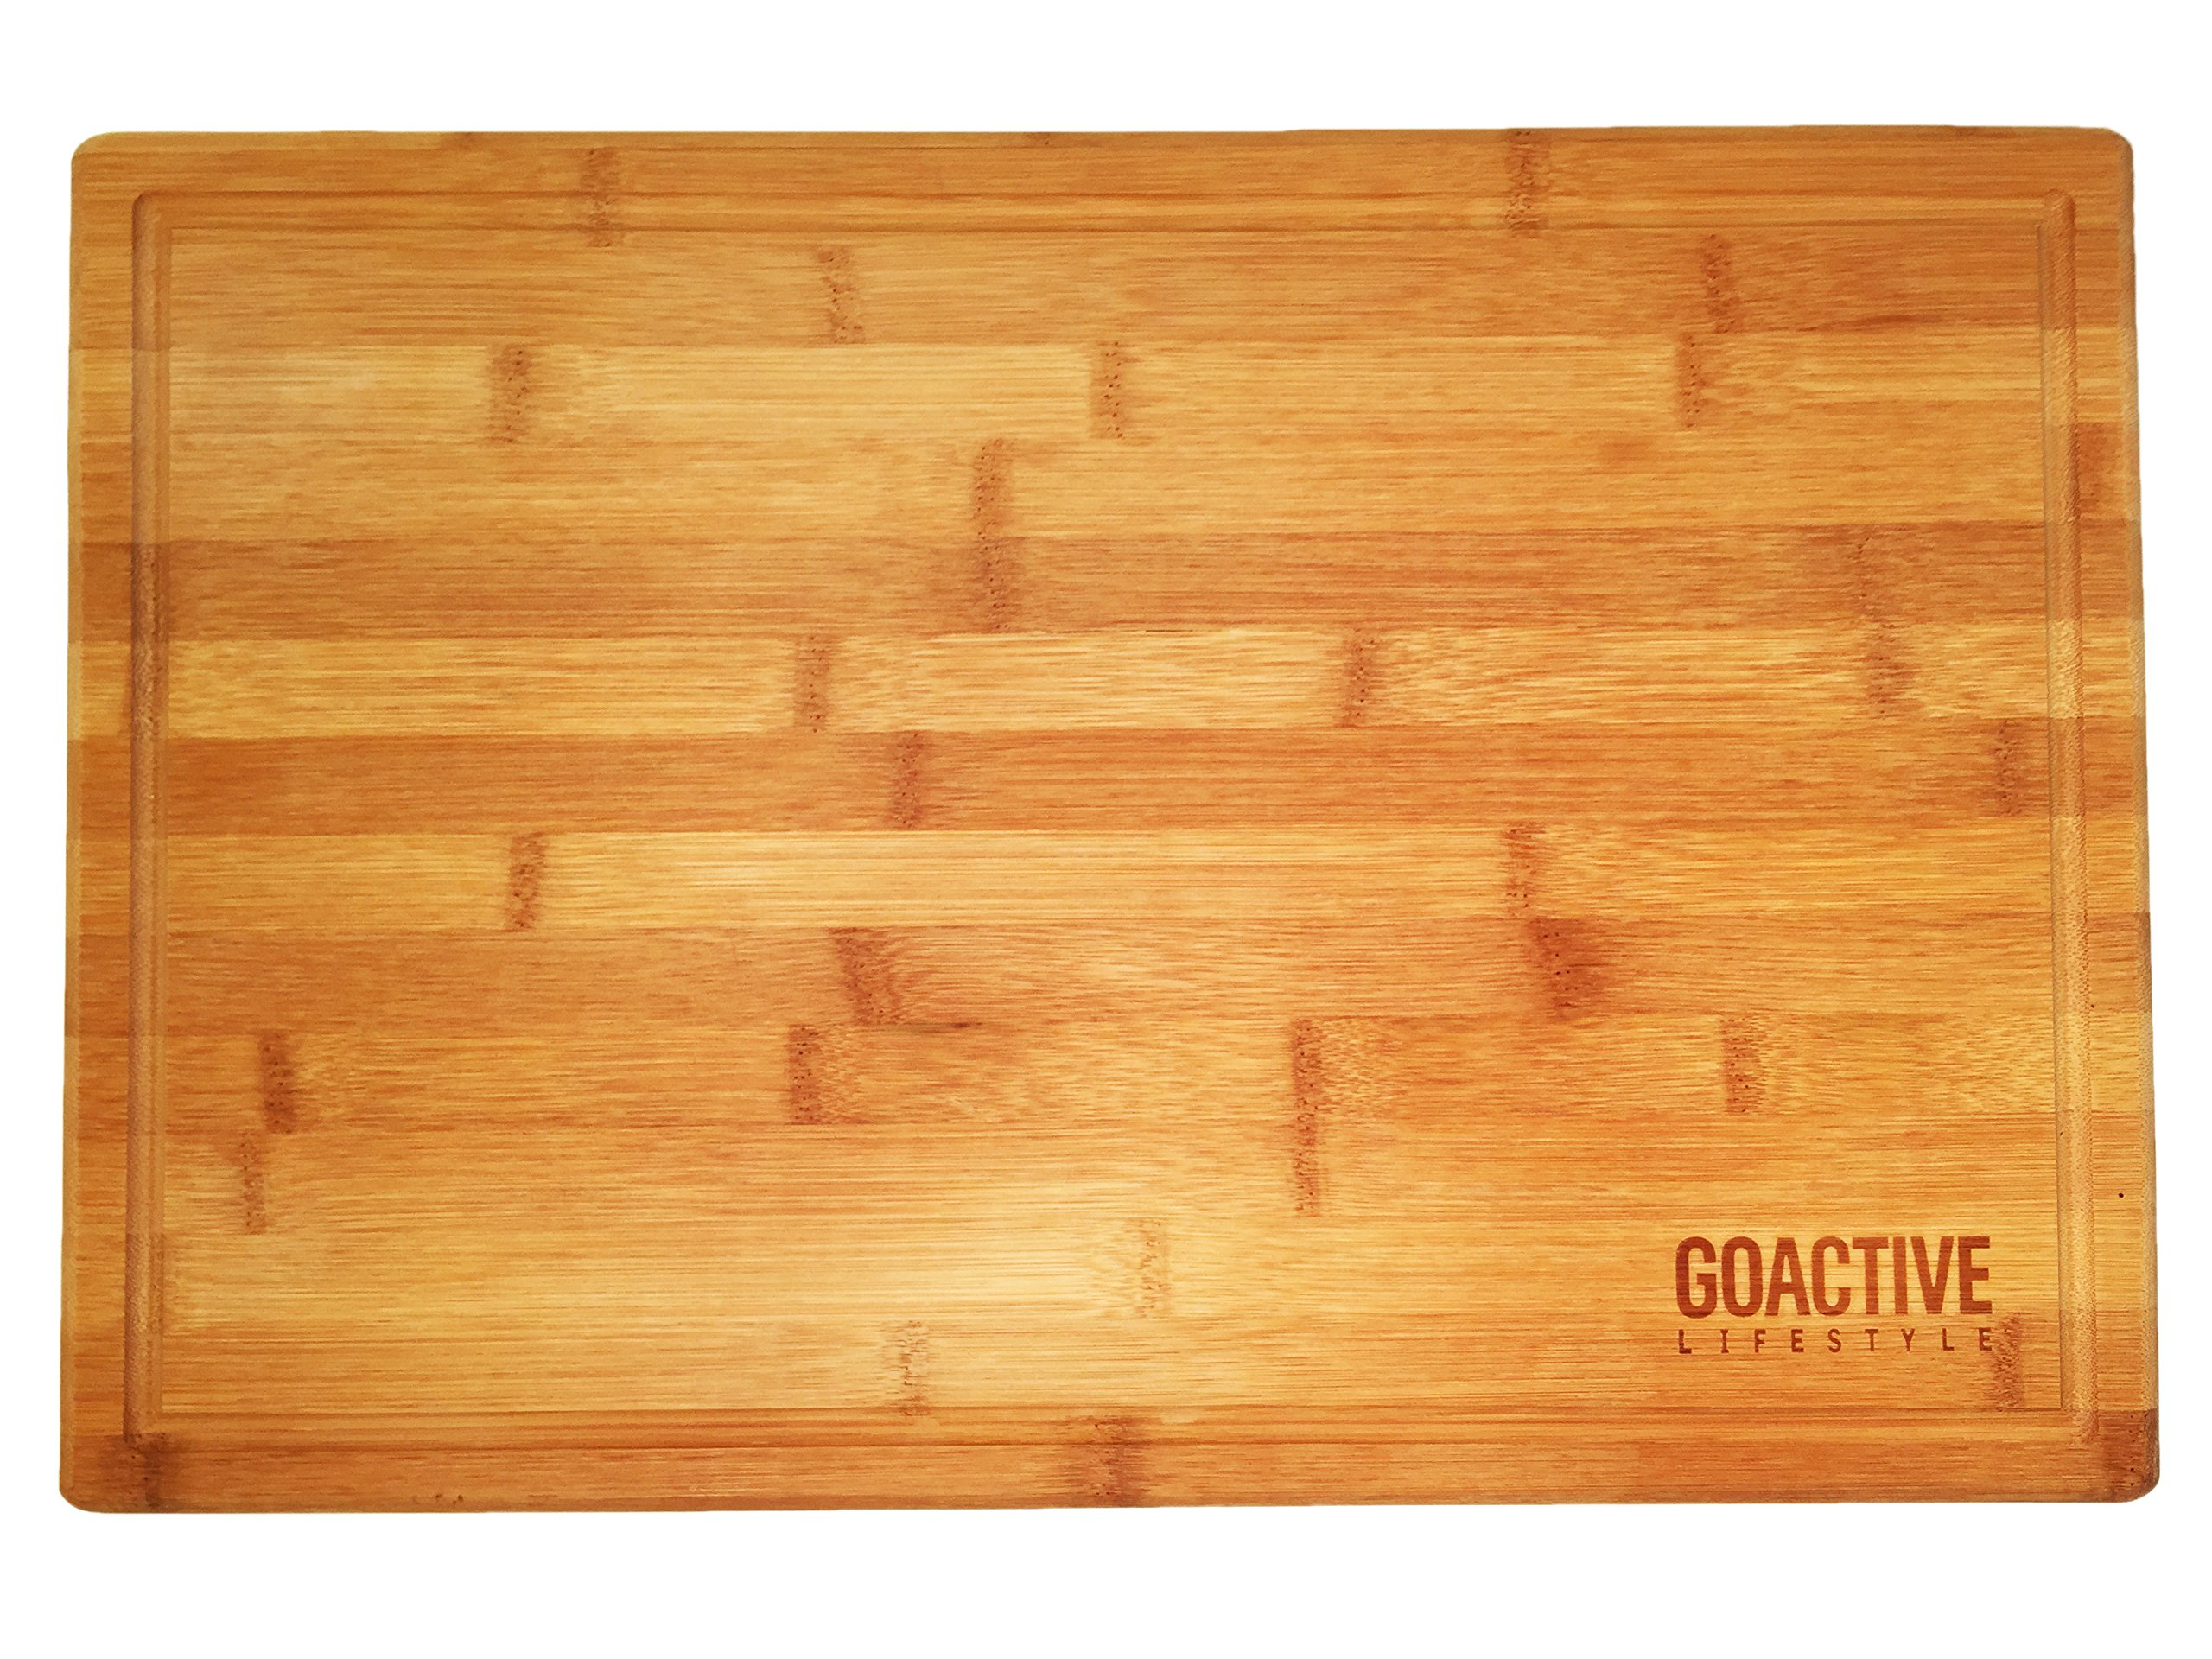 go active lifestyle extra large 18x12 bamboo cutting board with drip groove ebay. Black Bedroom Furniture Sets. Home Design Ideas